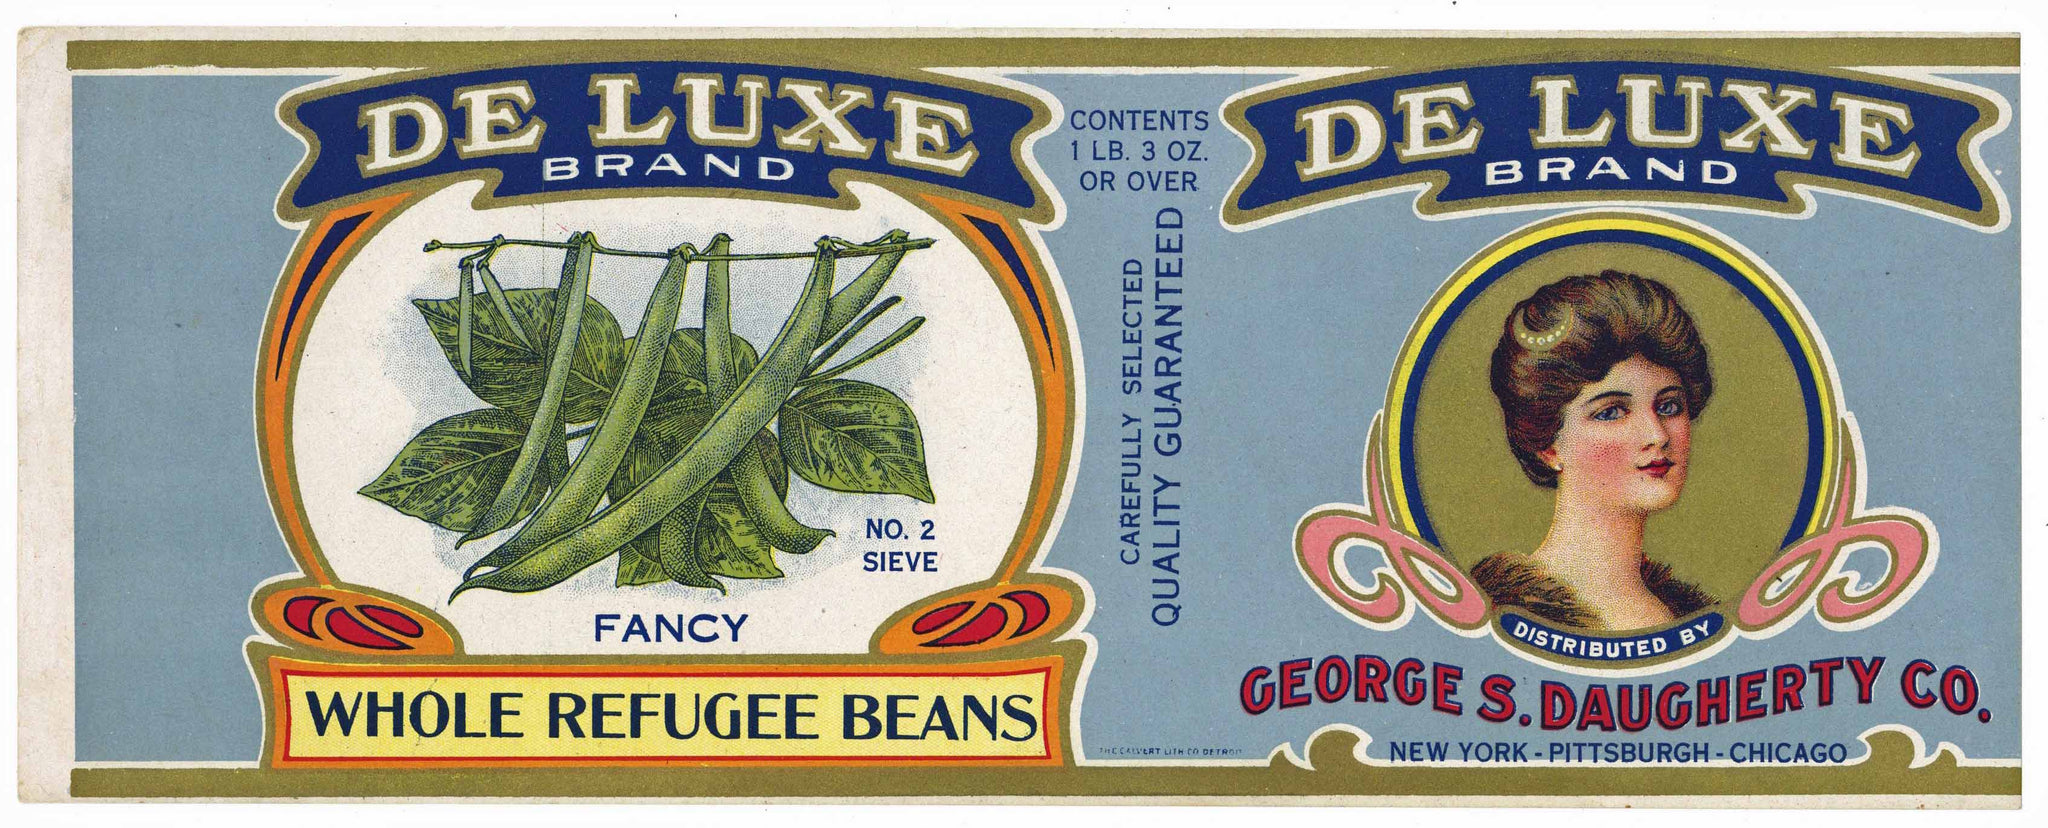 De Luxe Brand Vintage Refugee Bean Can Label